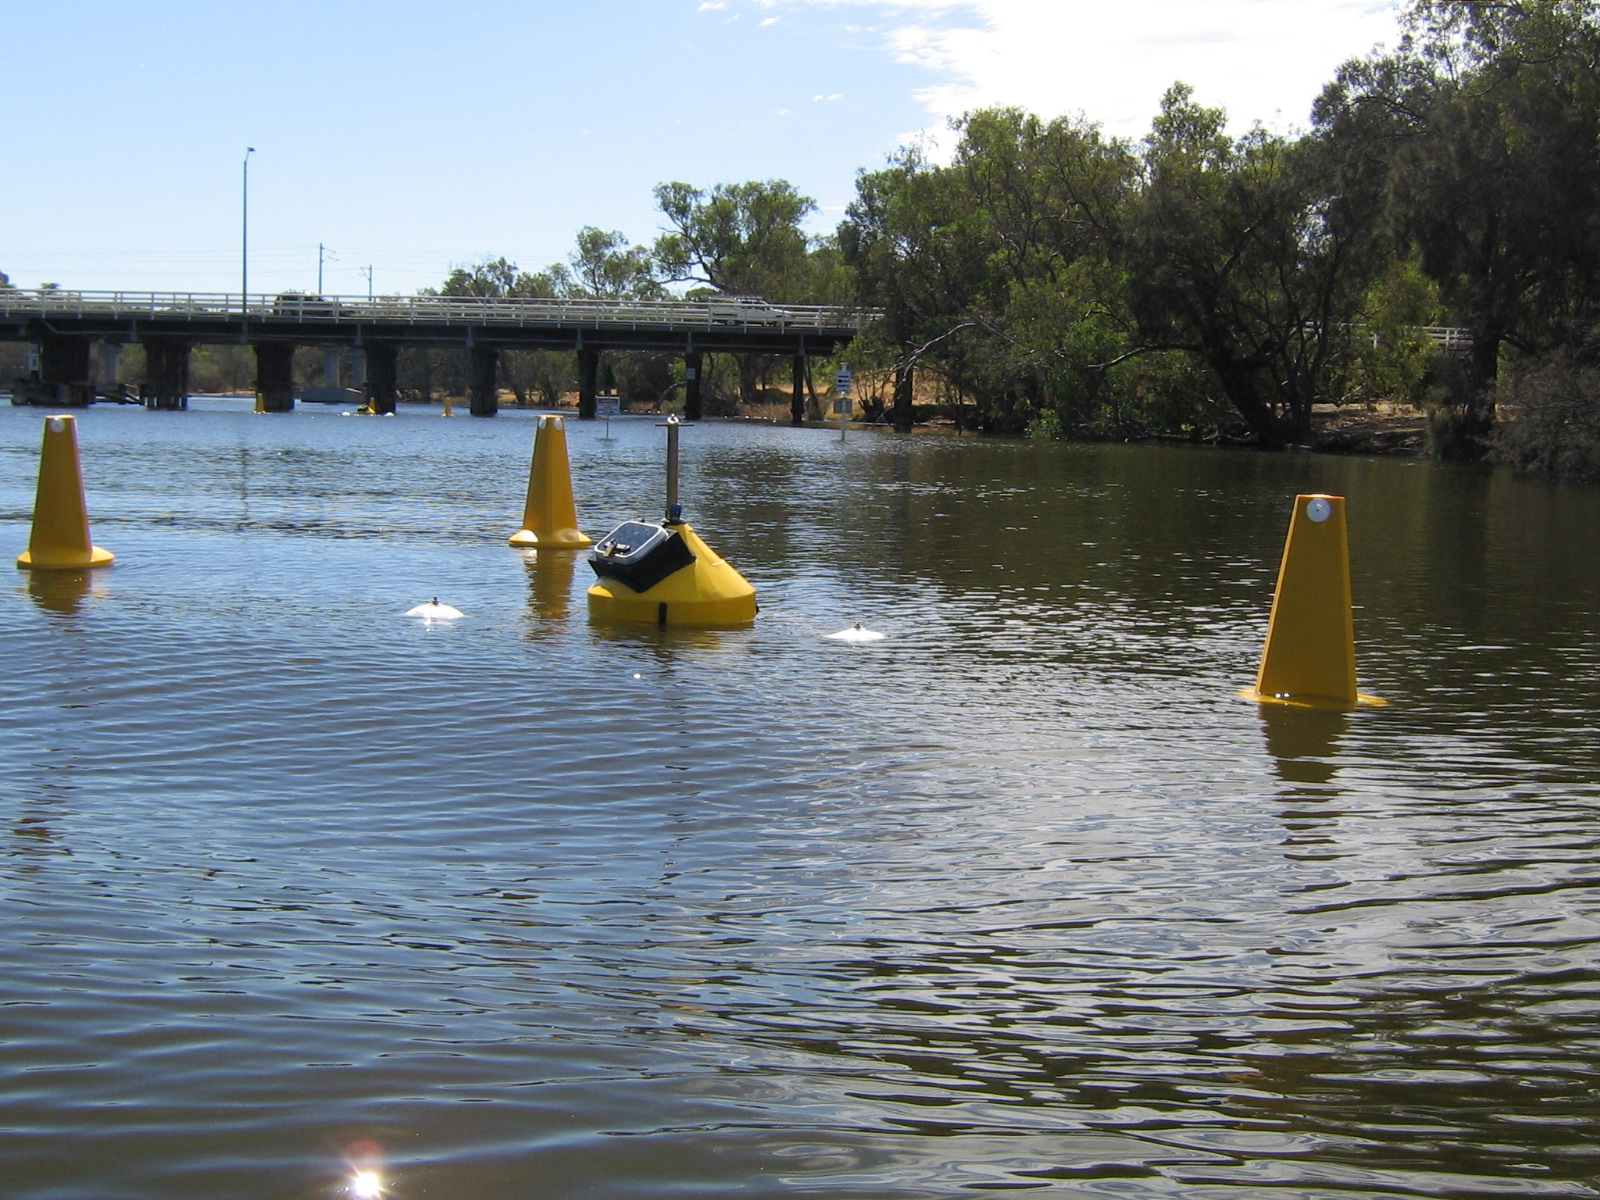 Monitoring buoys at the Guildford oxygenatino plant